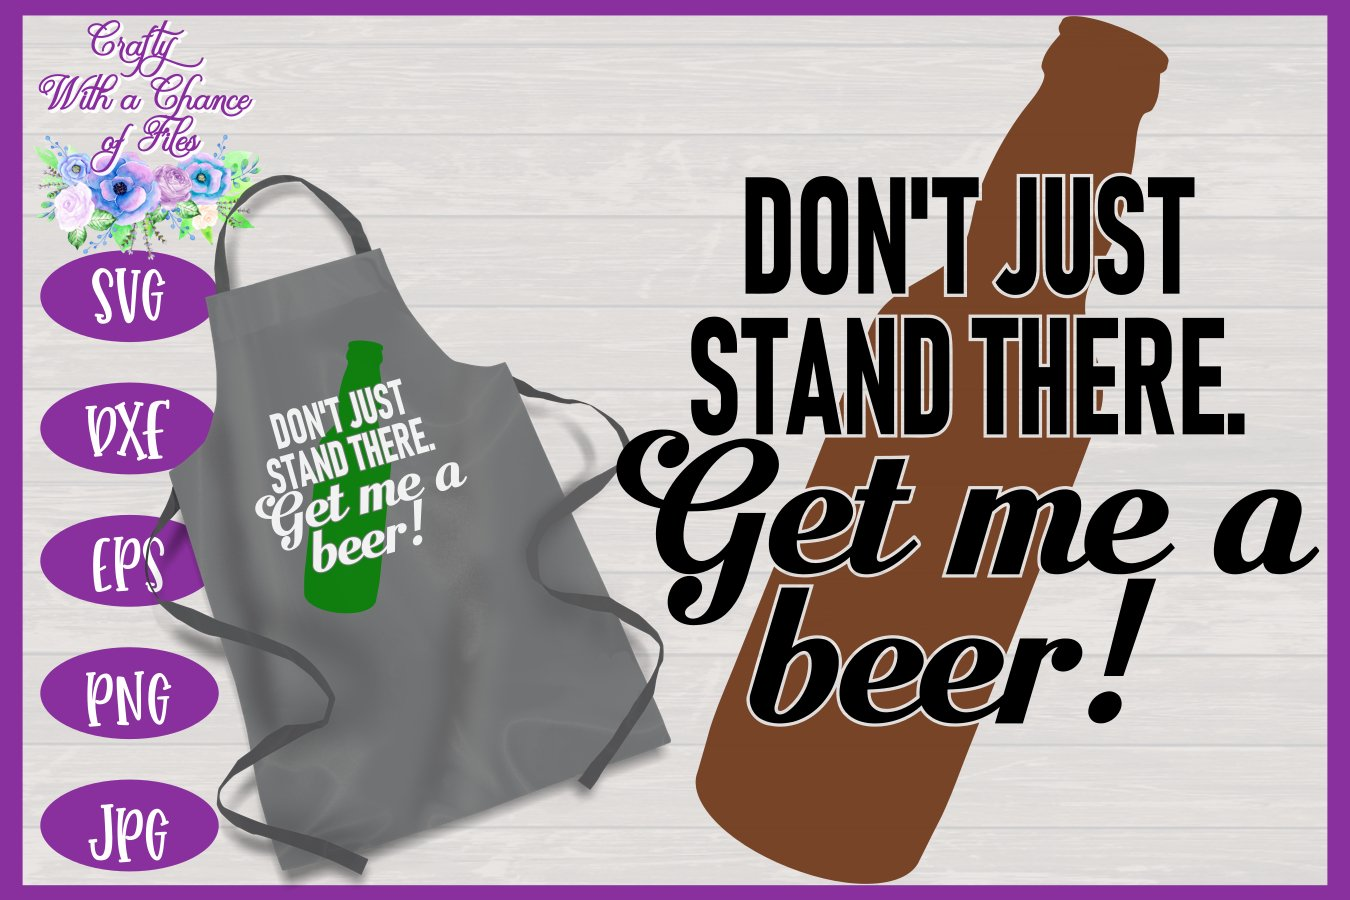 Free Warm family fathers day phrase svg art word. Get Me A Beer Svg Father S Day Bbq Grill Apron 270850 Svgs Design Bundles SVG, PNG, EPS, DXF File